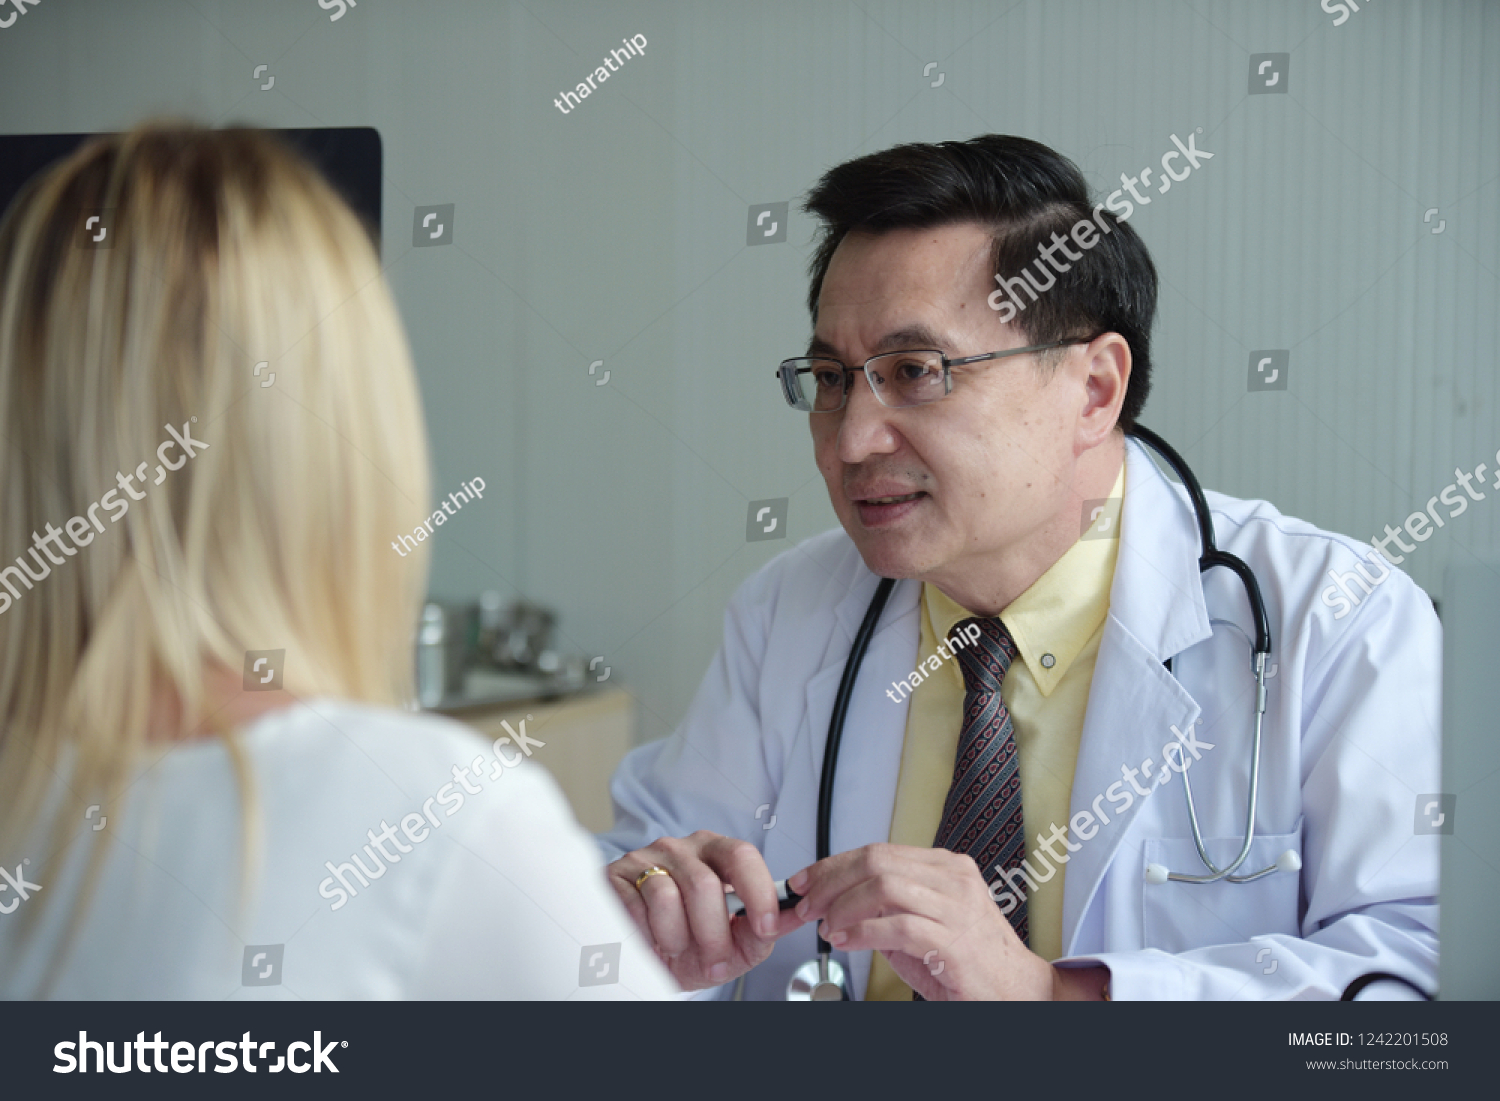 Woman Talking Doctor Psychiatrist Hospital Discuss Issue Stock Photo